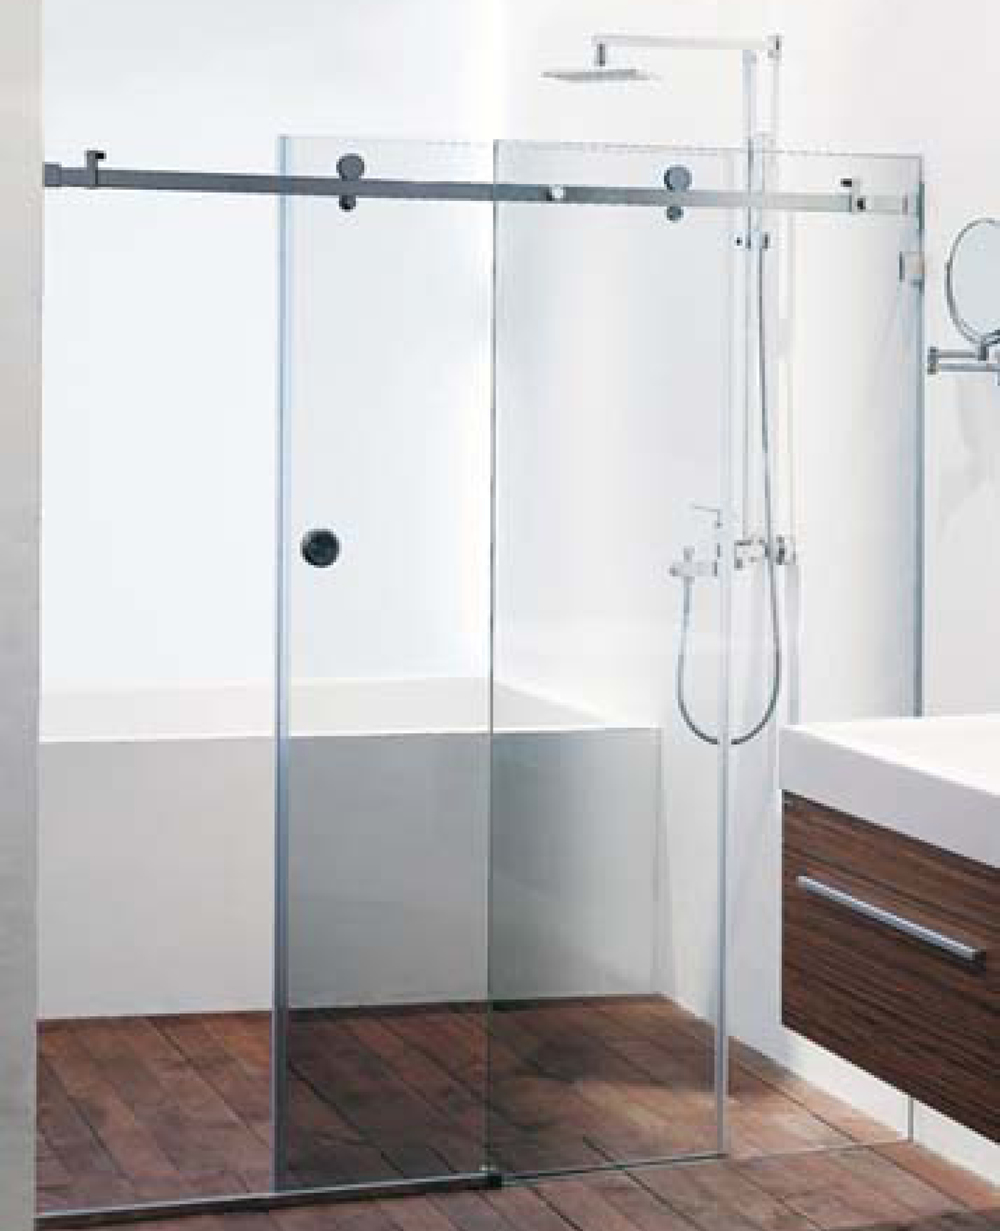 melbourne-glass-group-showers3.jpg